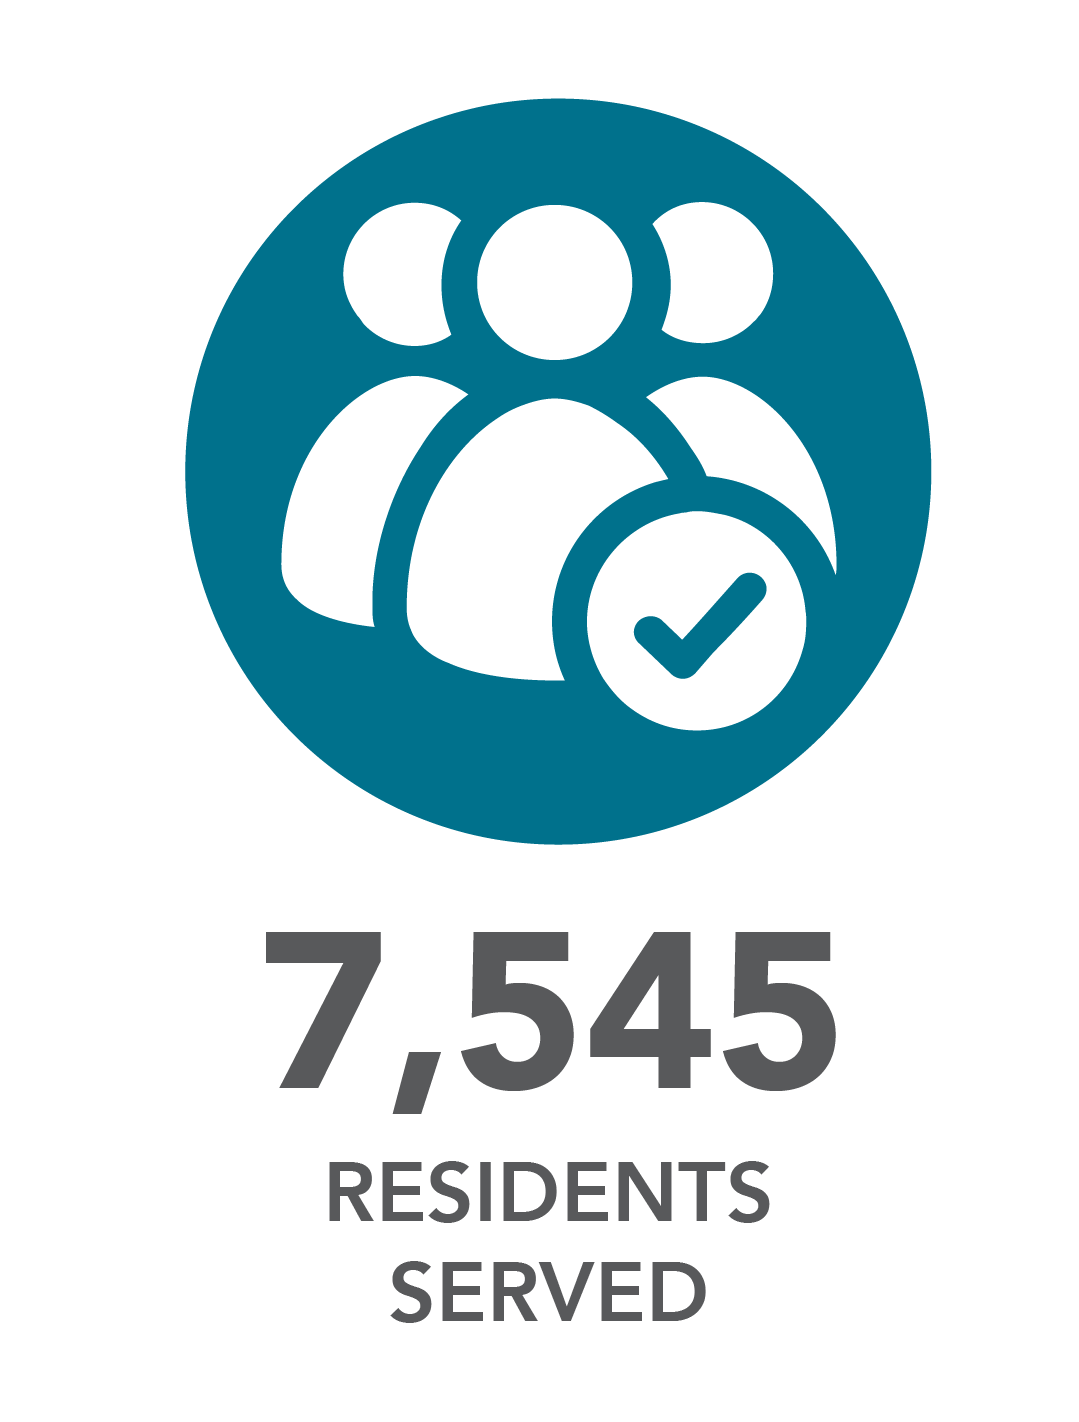 7,545 residents served.